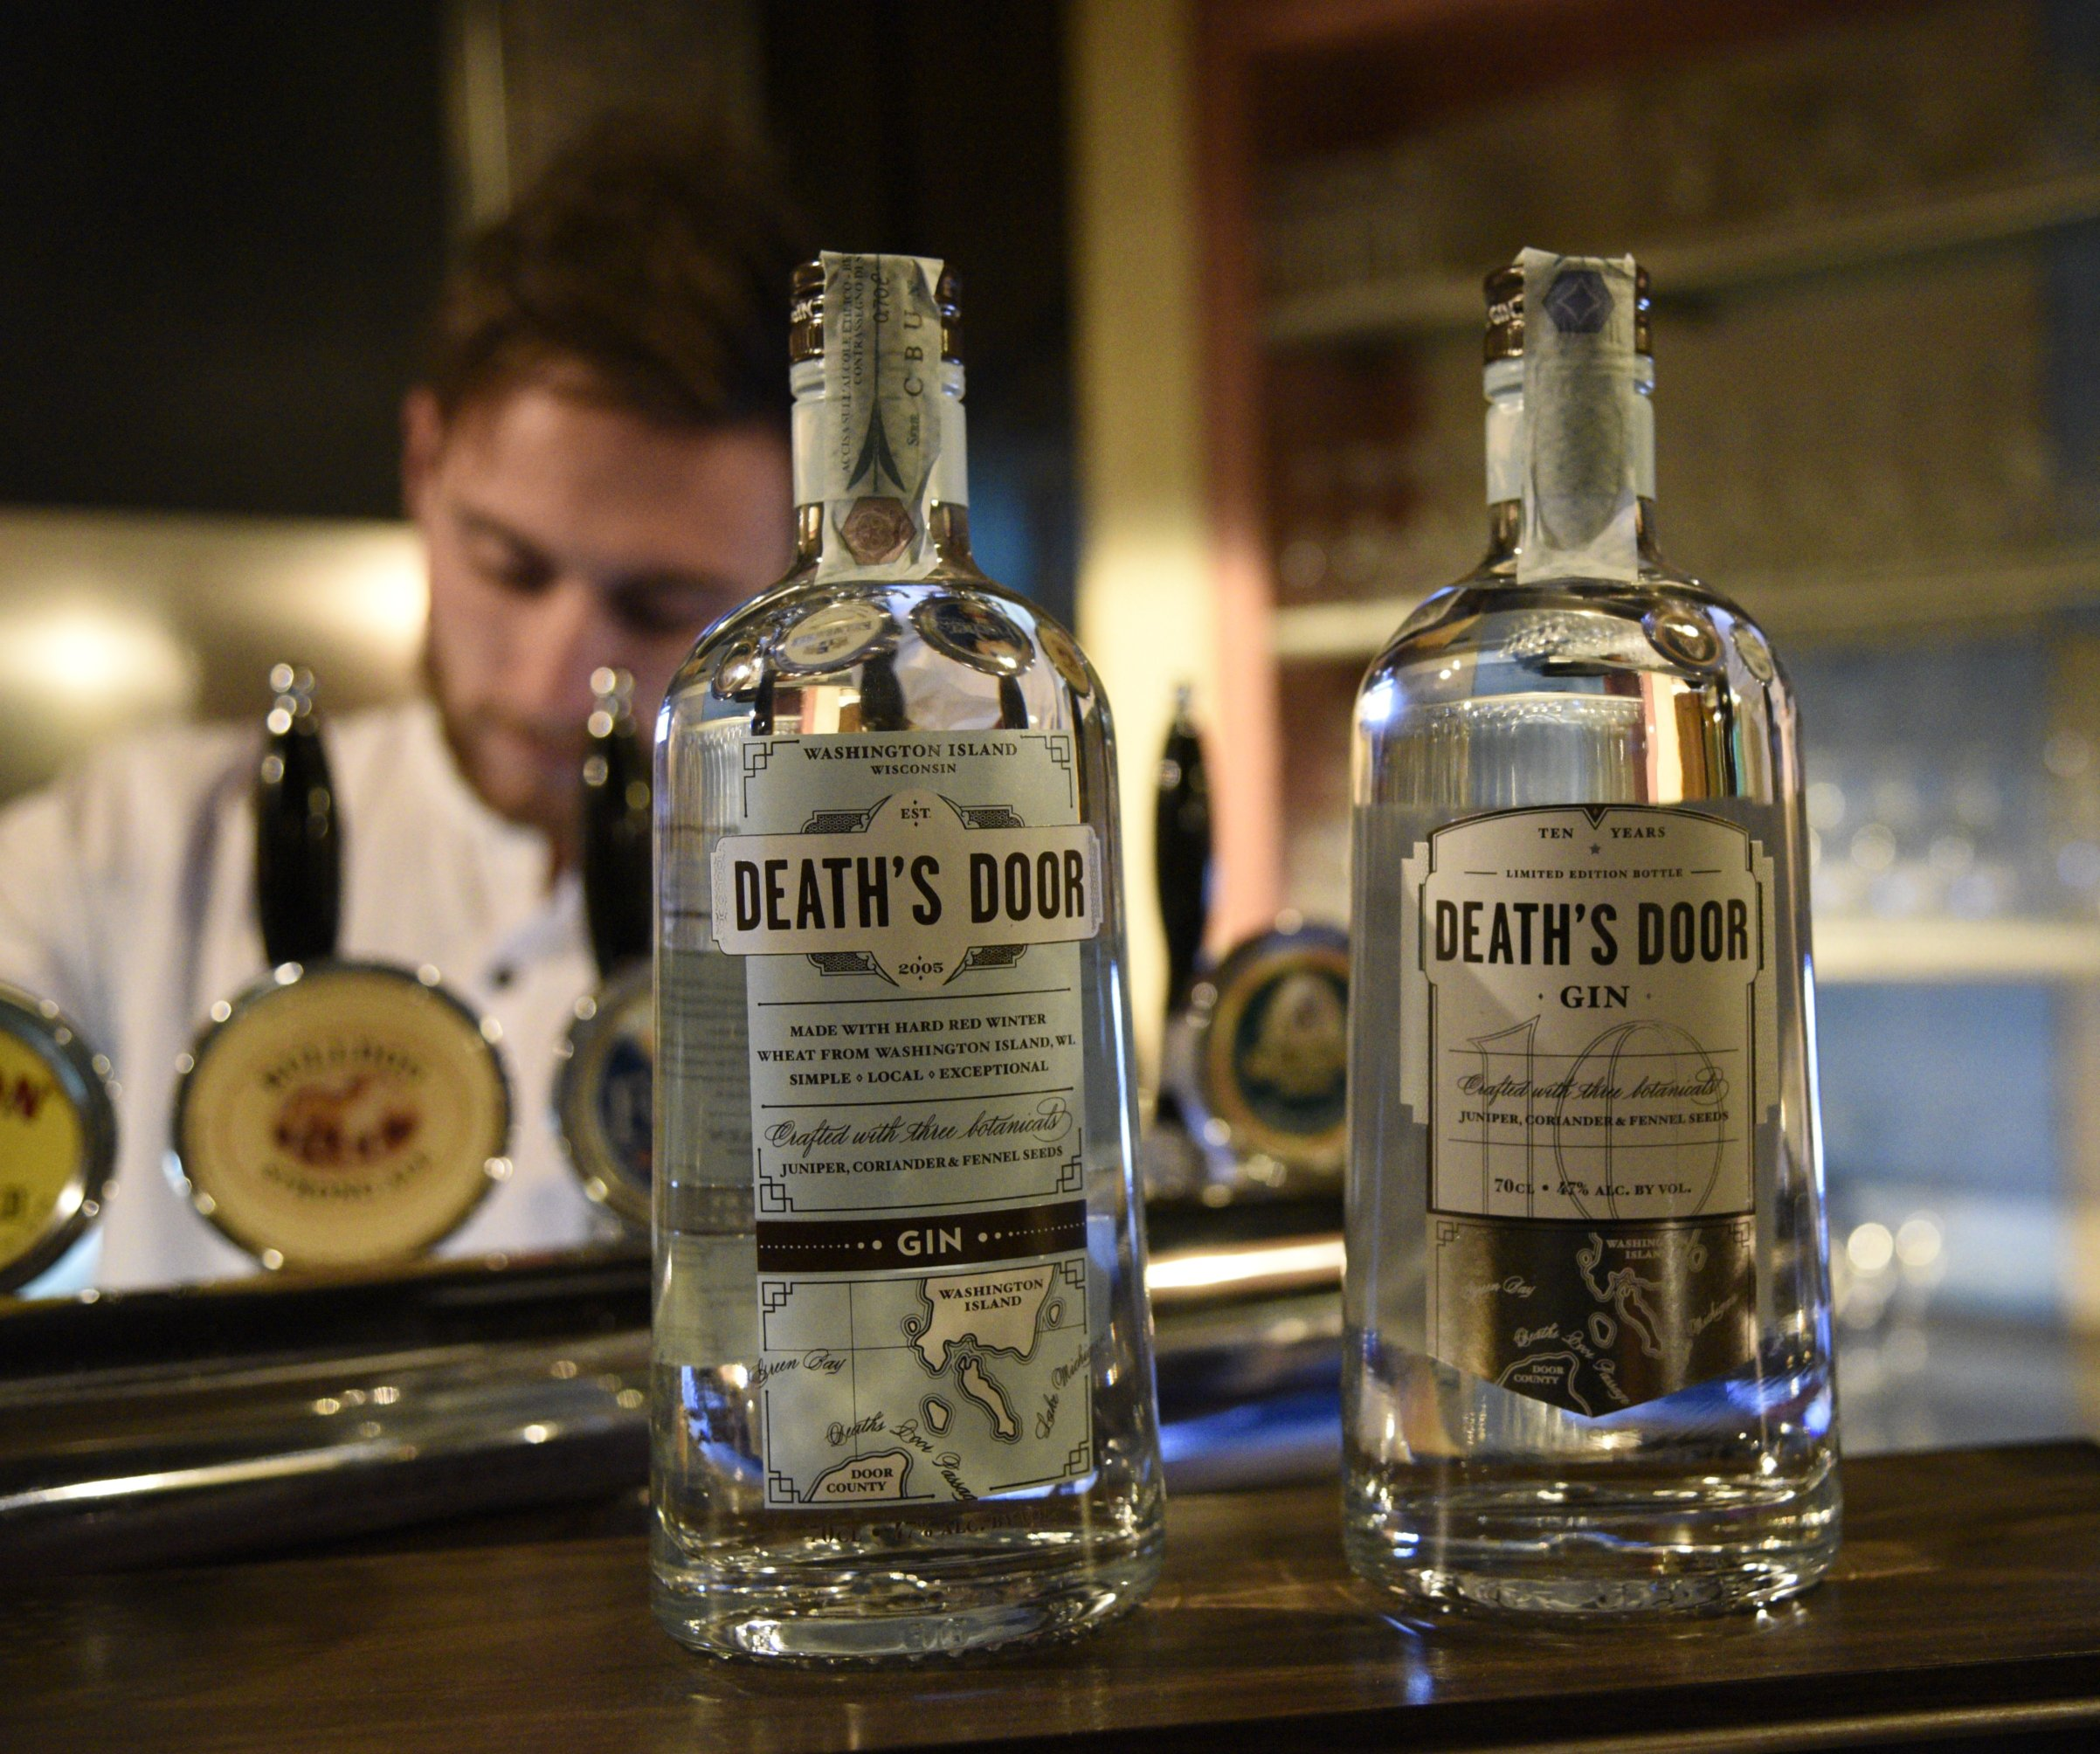 Death's Door gin and its 10 year anniversary bottle